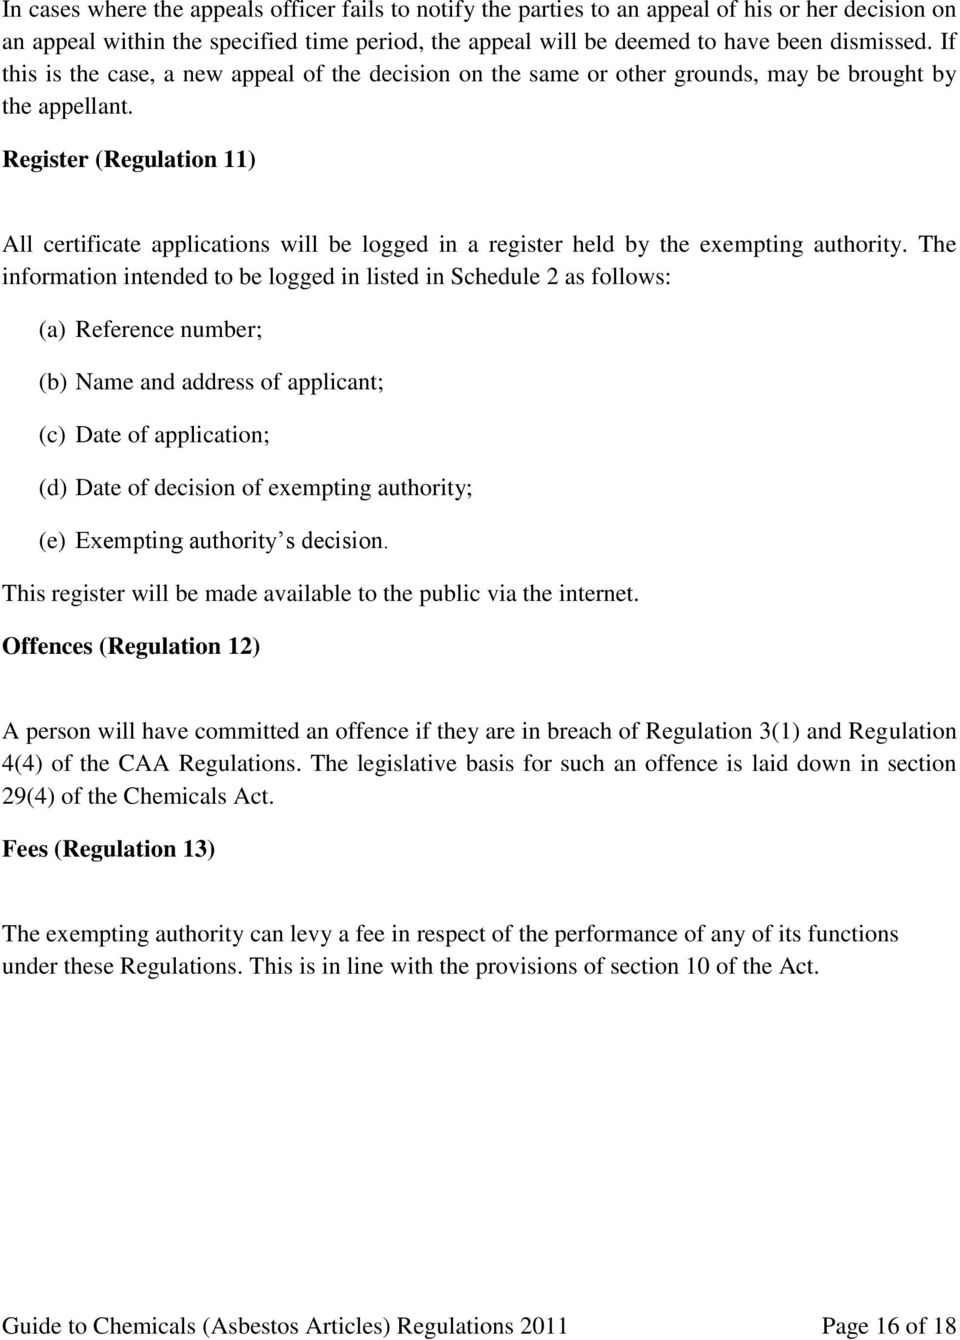 Register (Regulation 11) All certificate applications will be logged in a register held by the exempting authority.